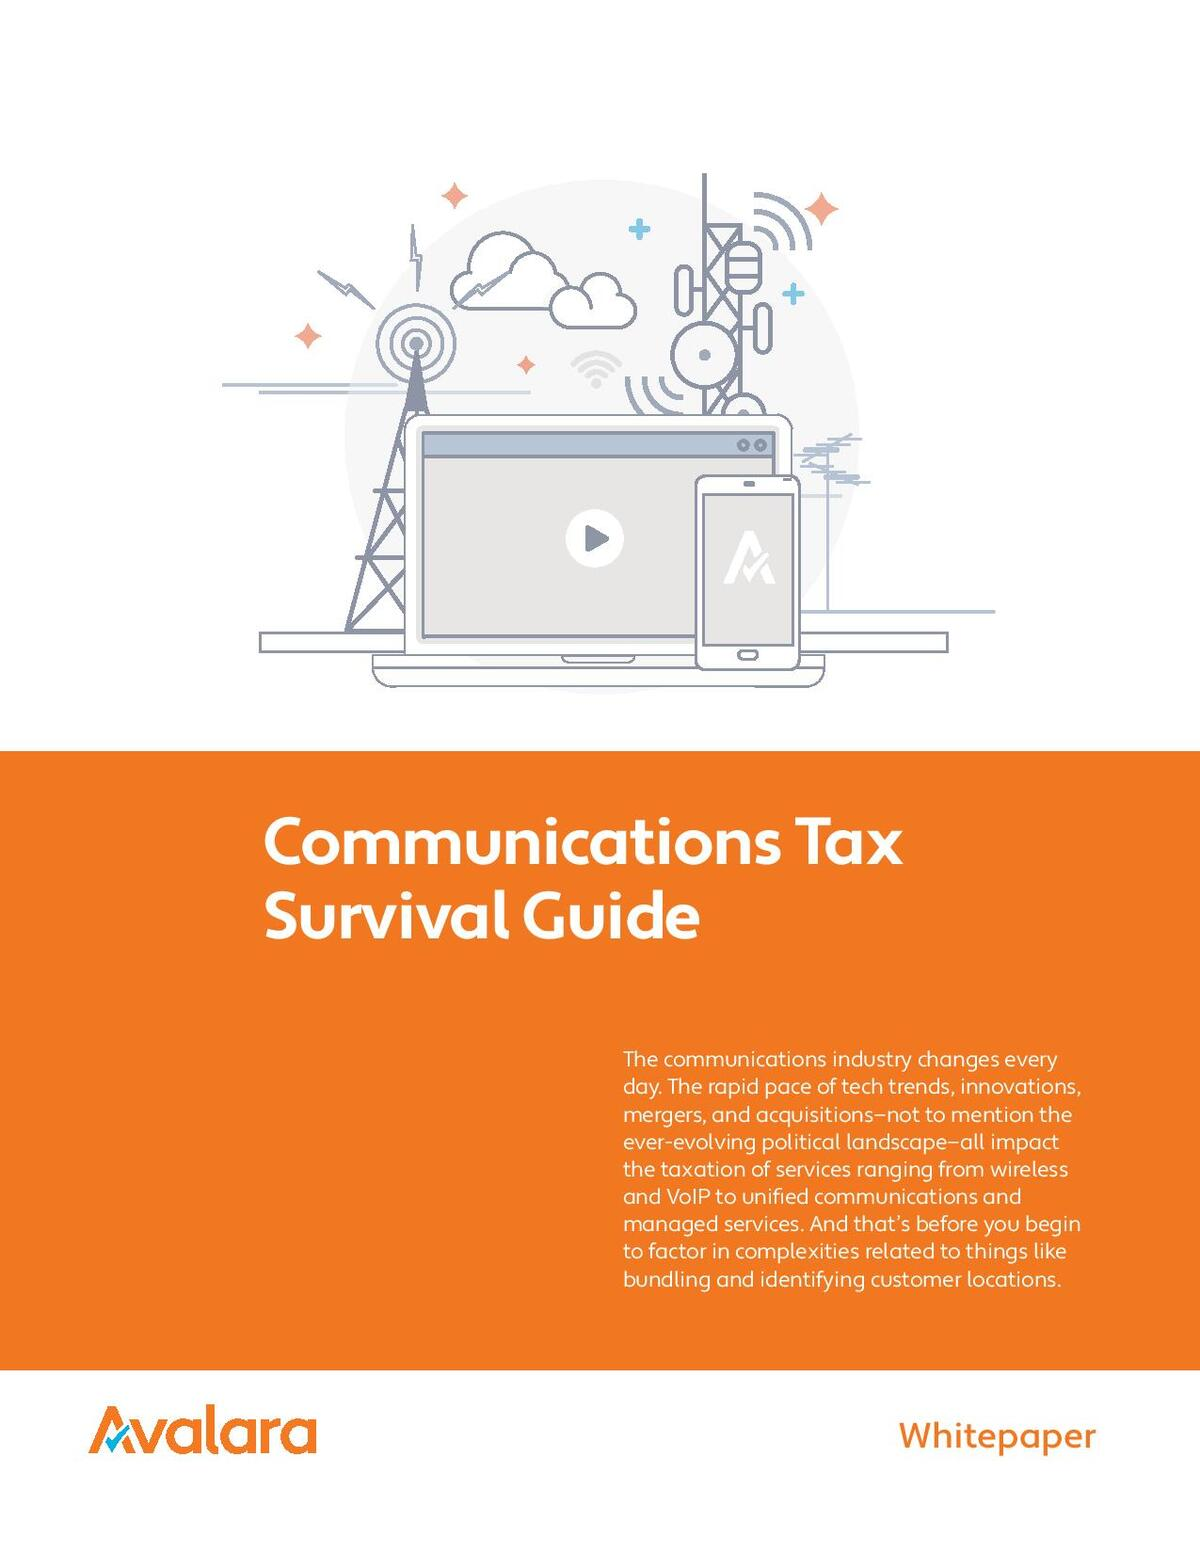 White paper - Communications Tax Survival Guide